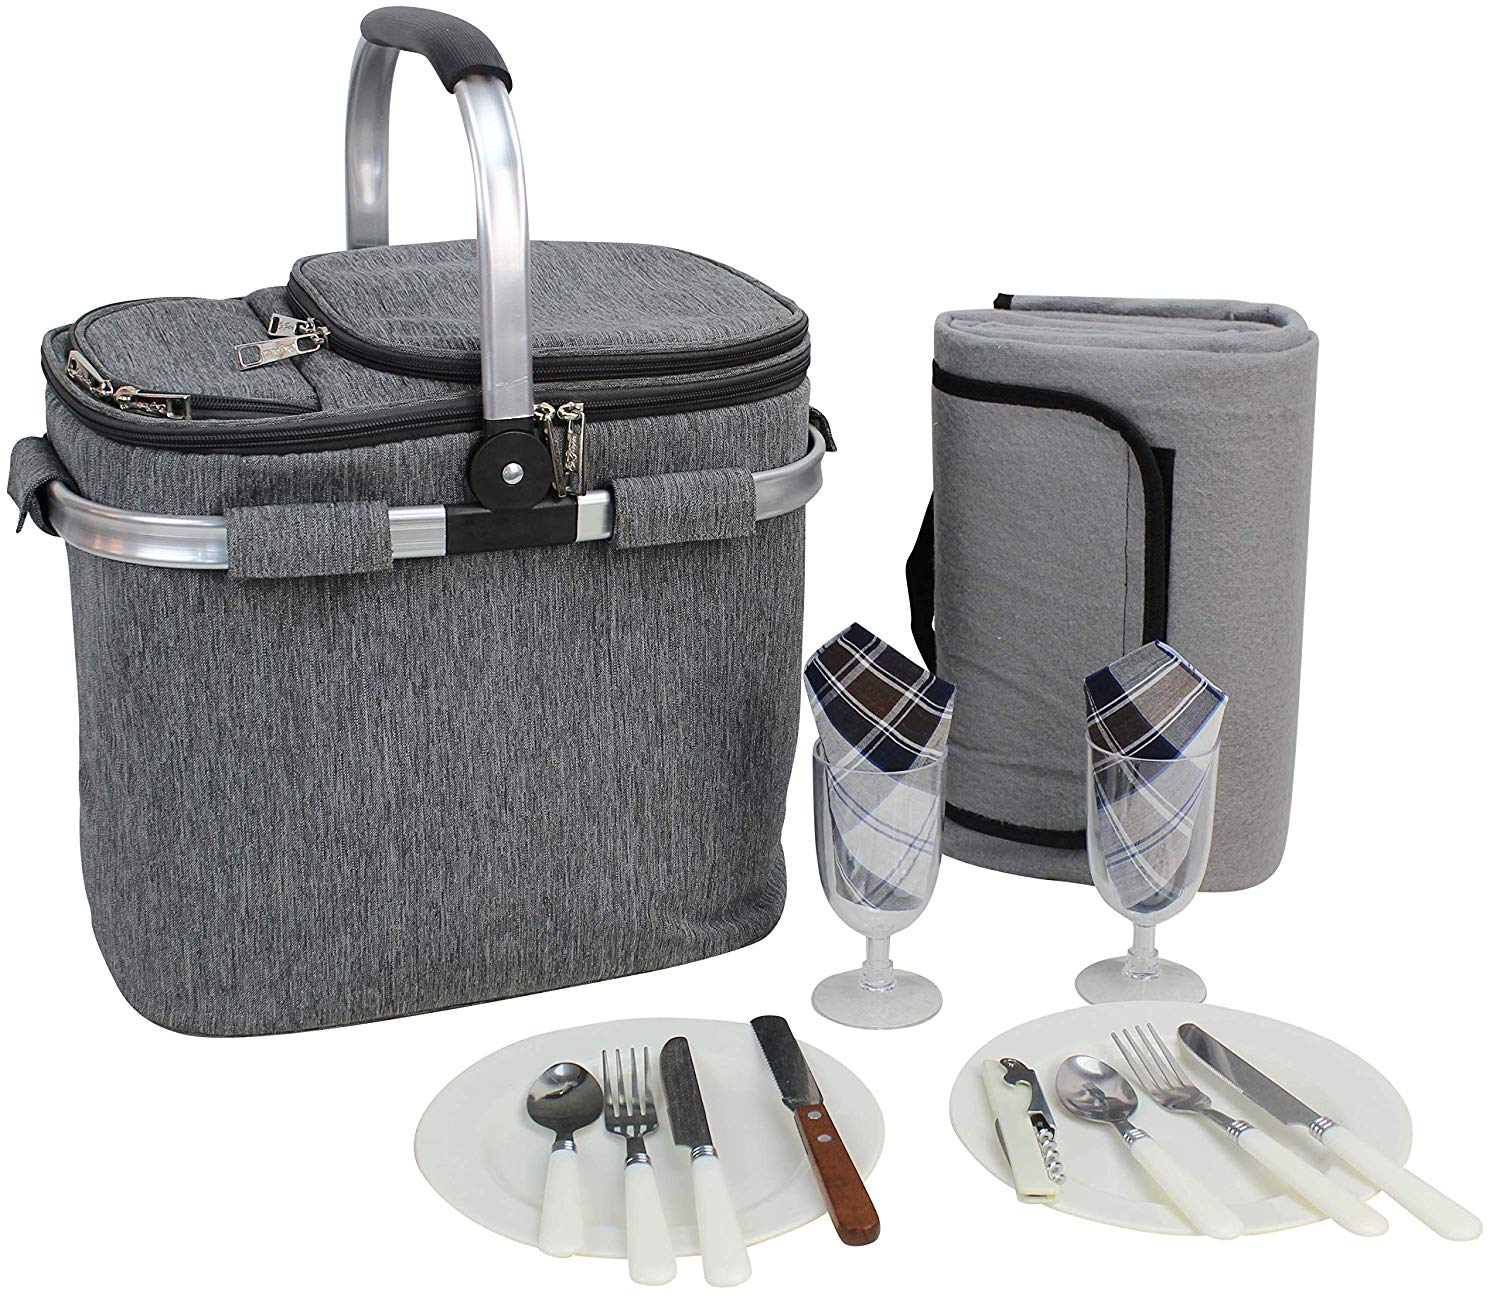 Picnic Insulated Tote Set for 2 | Picnic Basket | Sewn in Aluminum Frame and Handle | Drinks Cooler Bag | Collapsible Cooler Basket | Family Vacations Parties Outdoor Travel | Keep Food Cold Storage